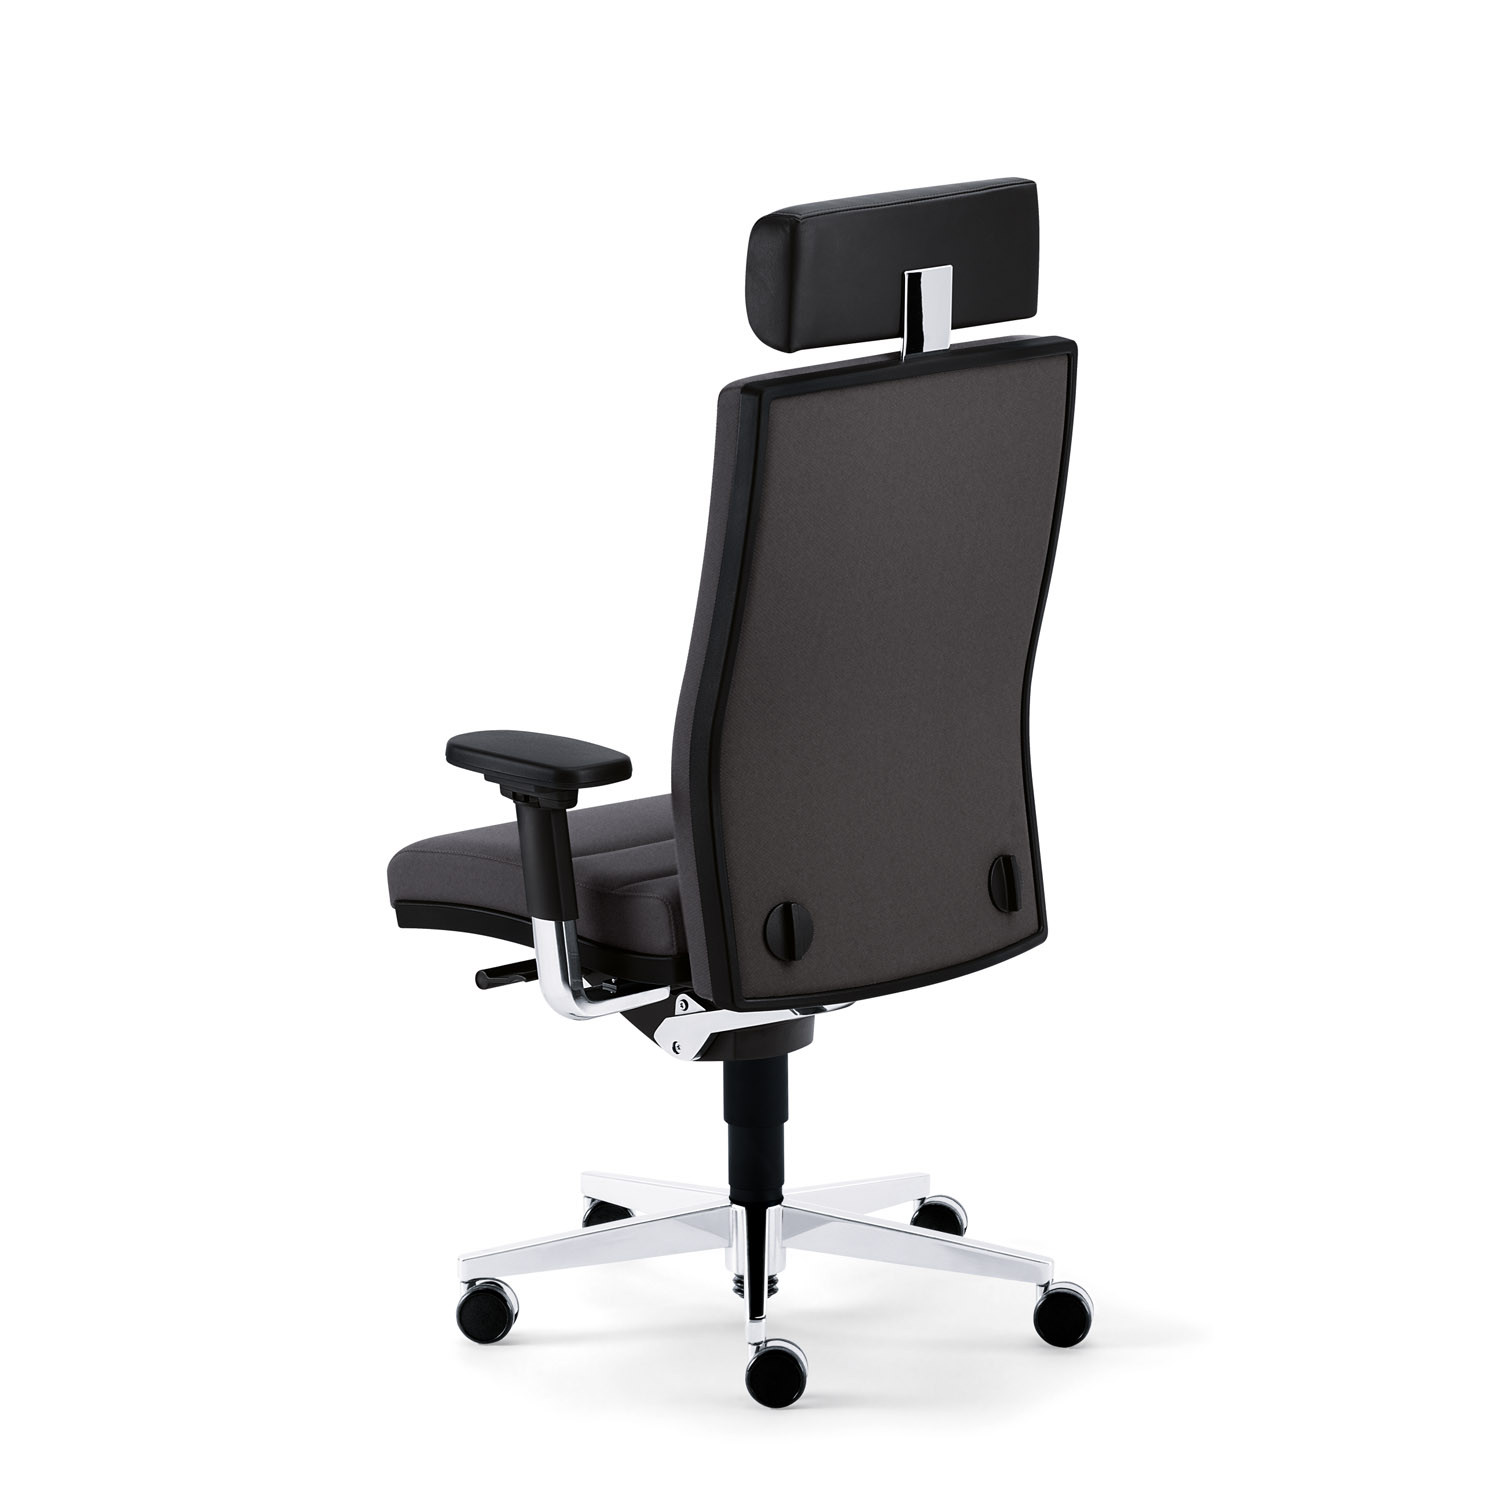 Mr. 24 Executive Office Chair from Sedus